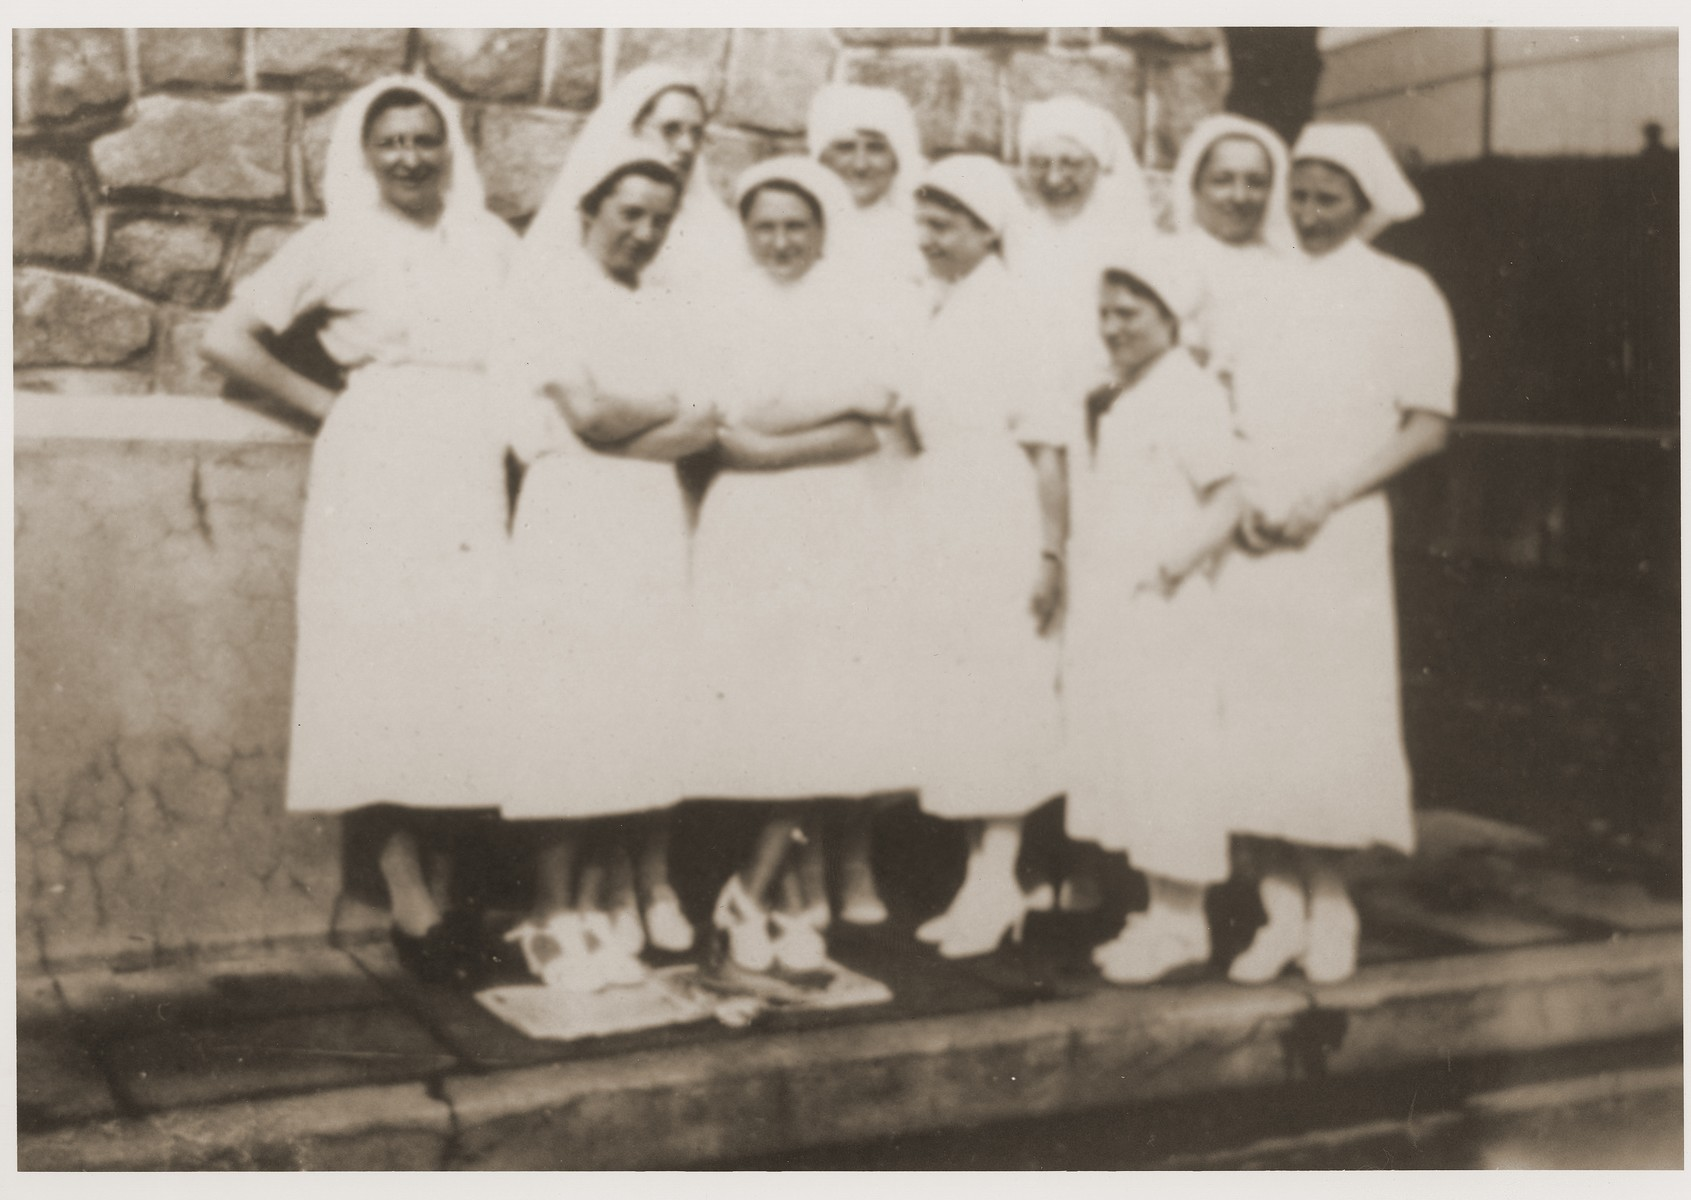 The team of nurses at the Recebedou camp.   At the back in the middle is Mademoiselle Hentsch, next to her in glasses is Helene Guillemin-Tarayre (a lifelong friend of Isabelle Peloux, the aunt of Marie Genevieve Parmentier). At left, with her arms crossed, is Mademoiselle Rondespierre, who followed Isabelle to Recebedou.